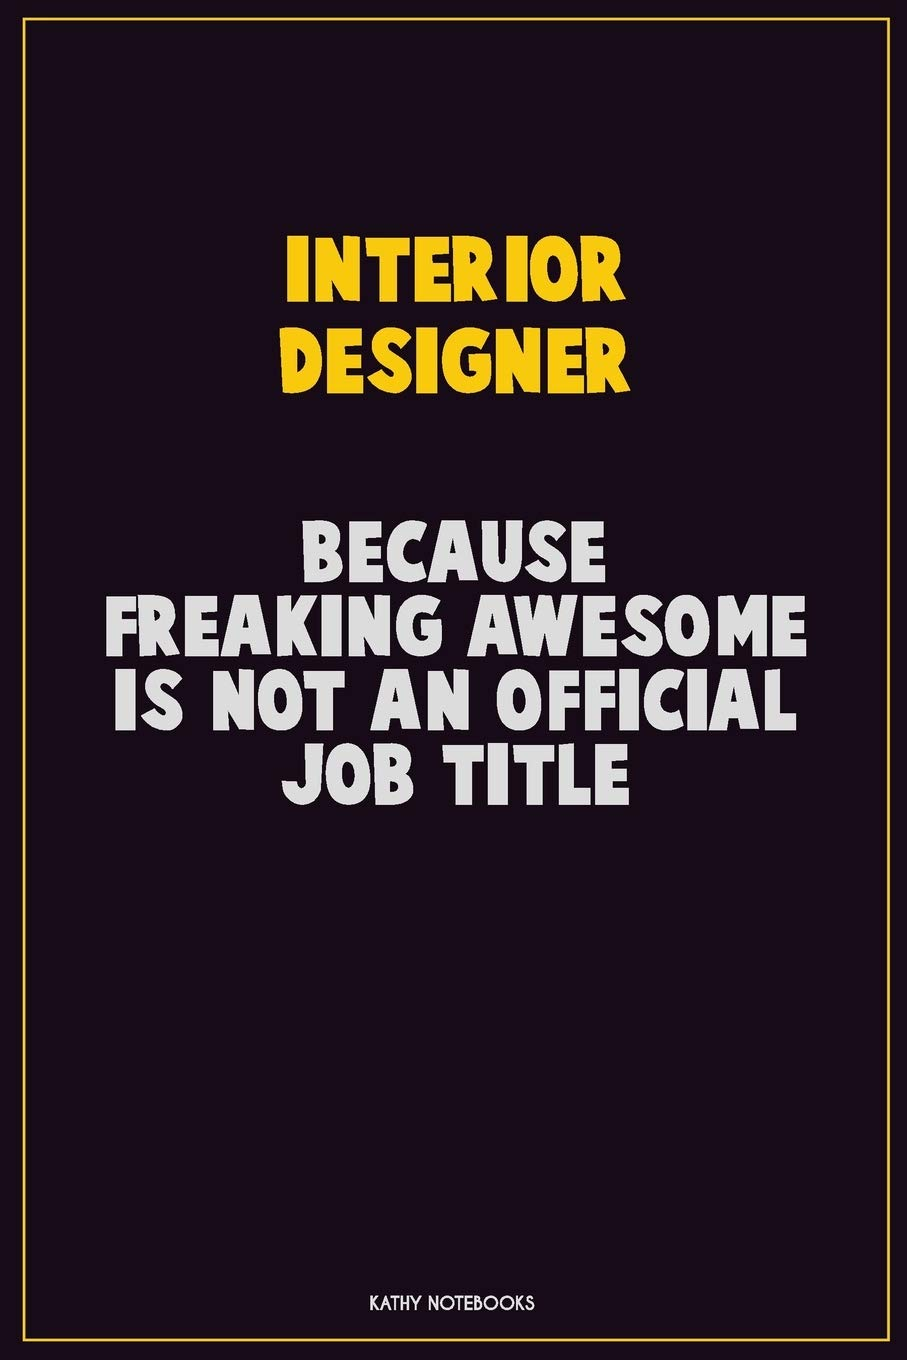 Interior Designer Because Freaking Awesome Is Not An Official Job Title Career Motivational Quotes 6x9 120 Pages Blank Lined Notebook Journal Notebooks Kathy 9781710268065 Amazon Com Books